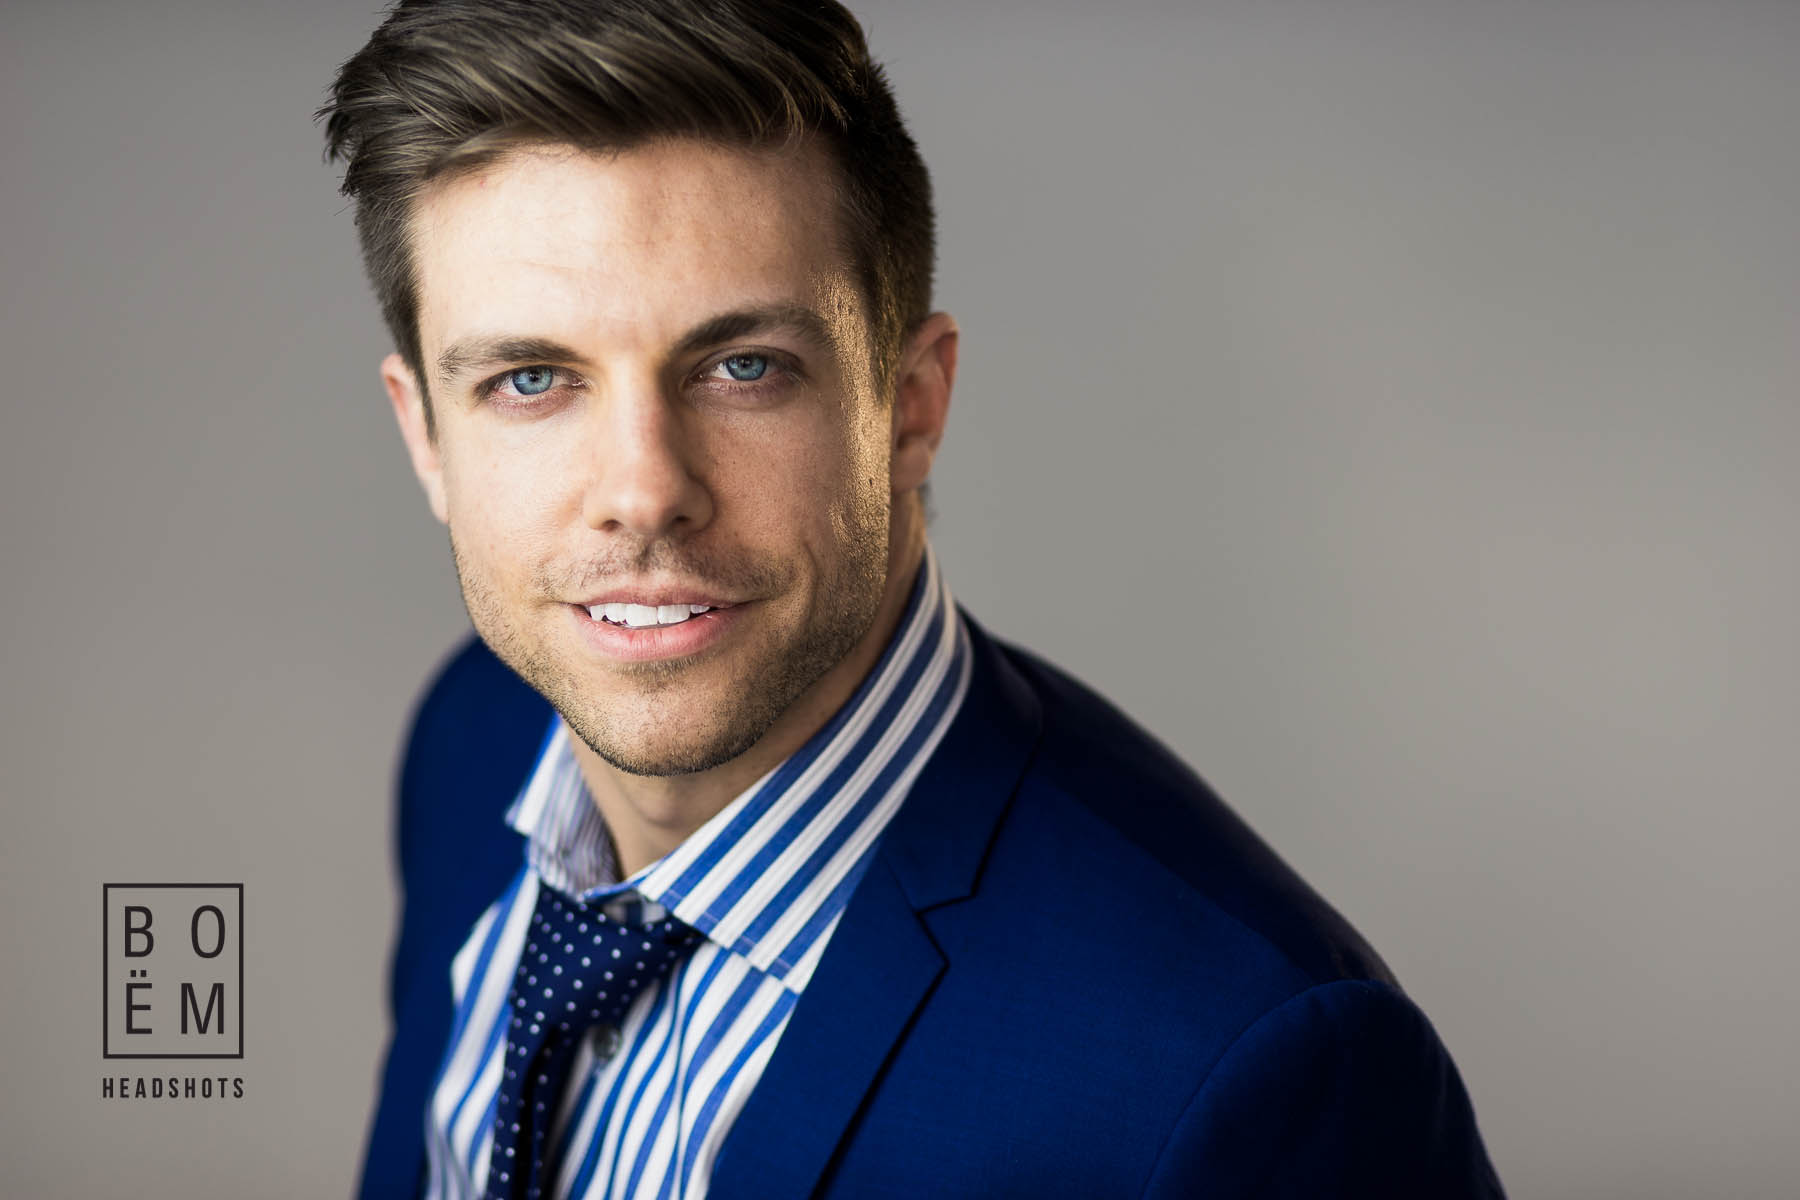 A professional headshot session for Adam, a young graduate looking for work and building his LinkedIn Profile by Andre Goosen for Boem Headshots, The premier headshot photographer.